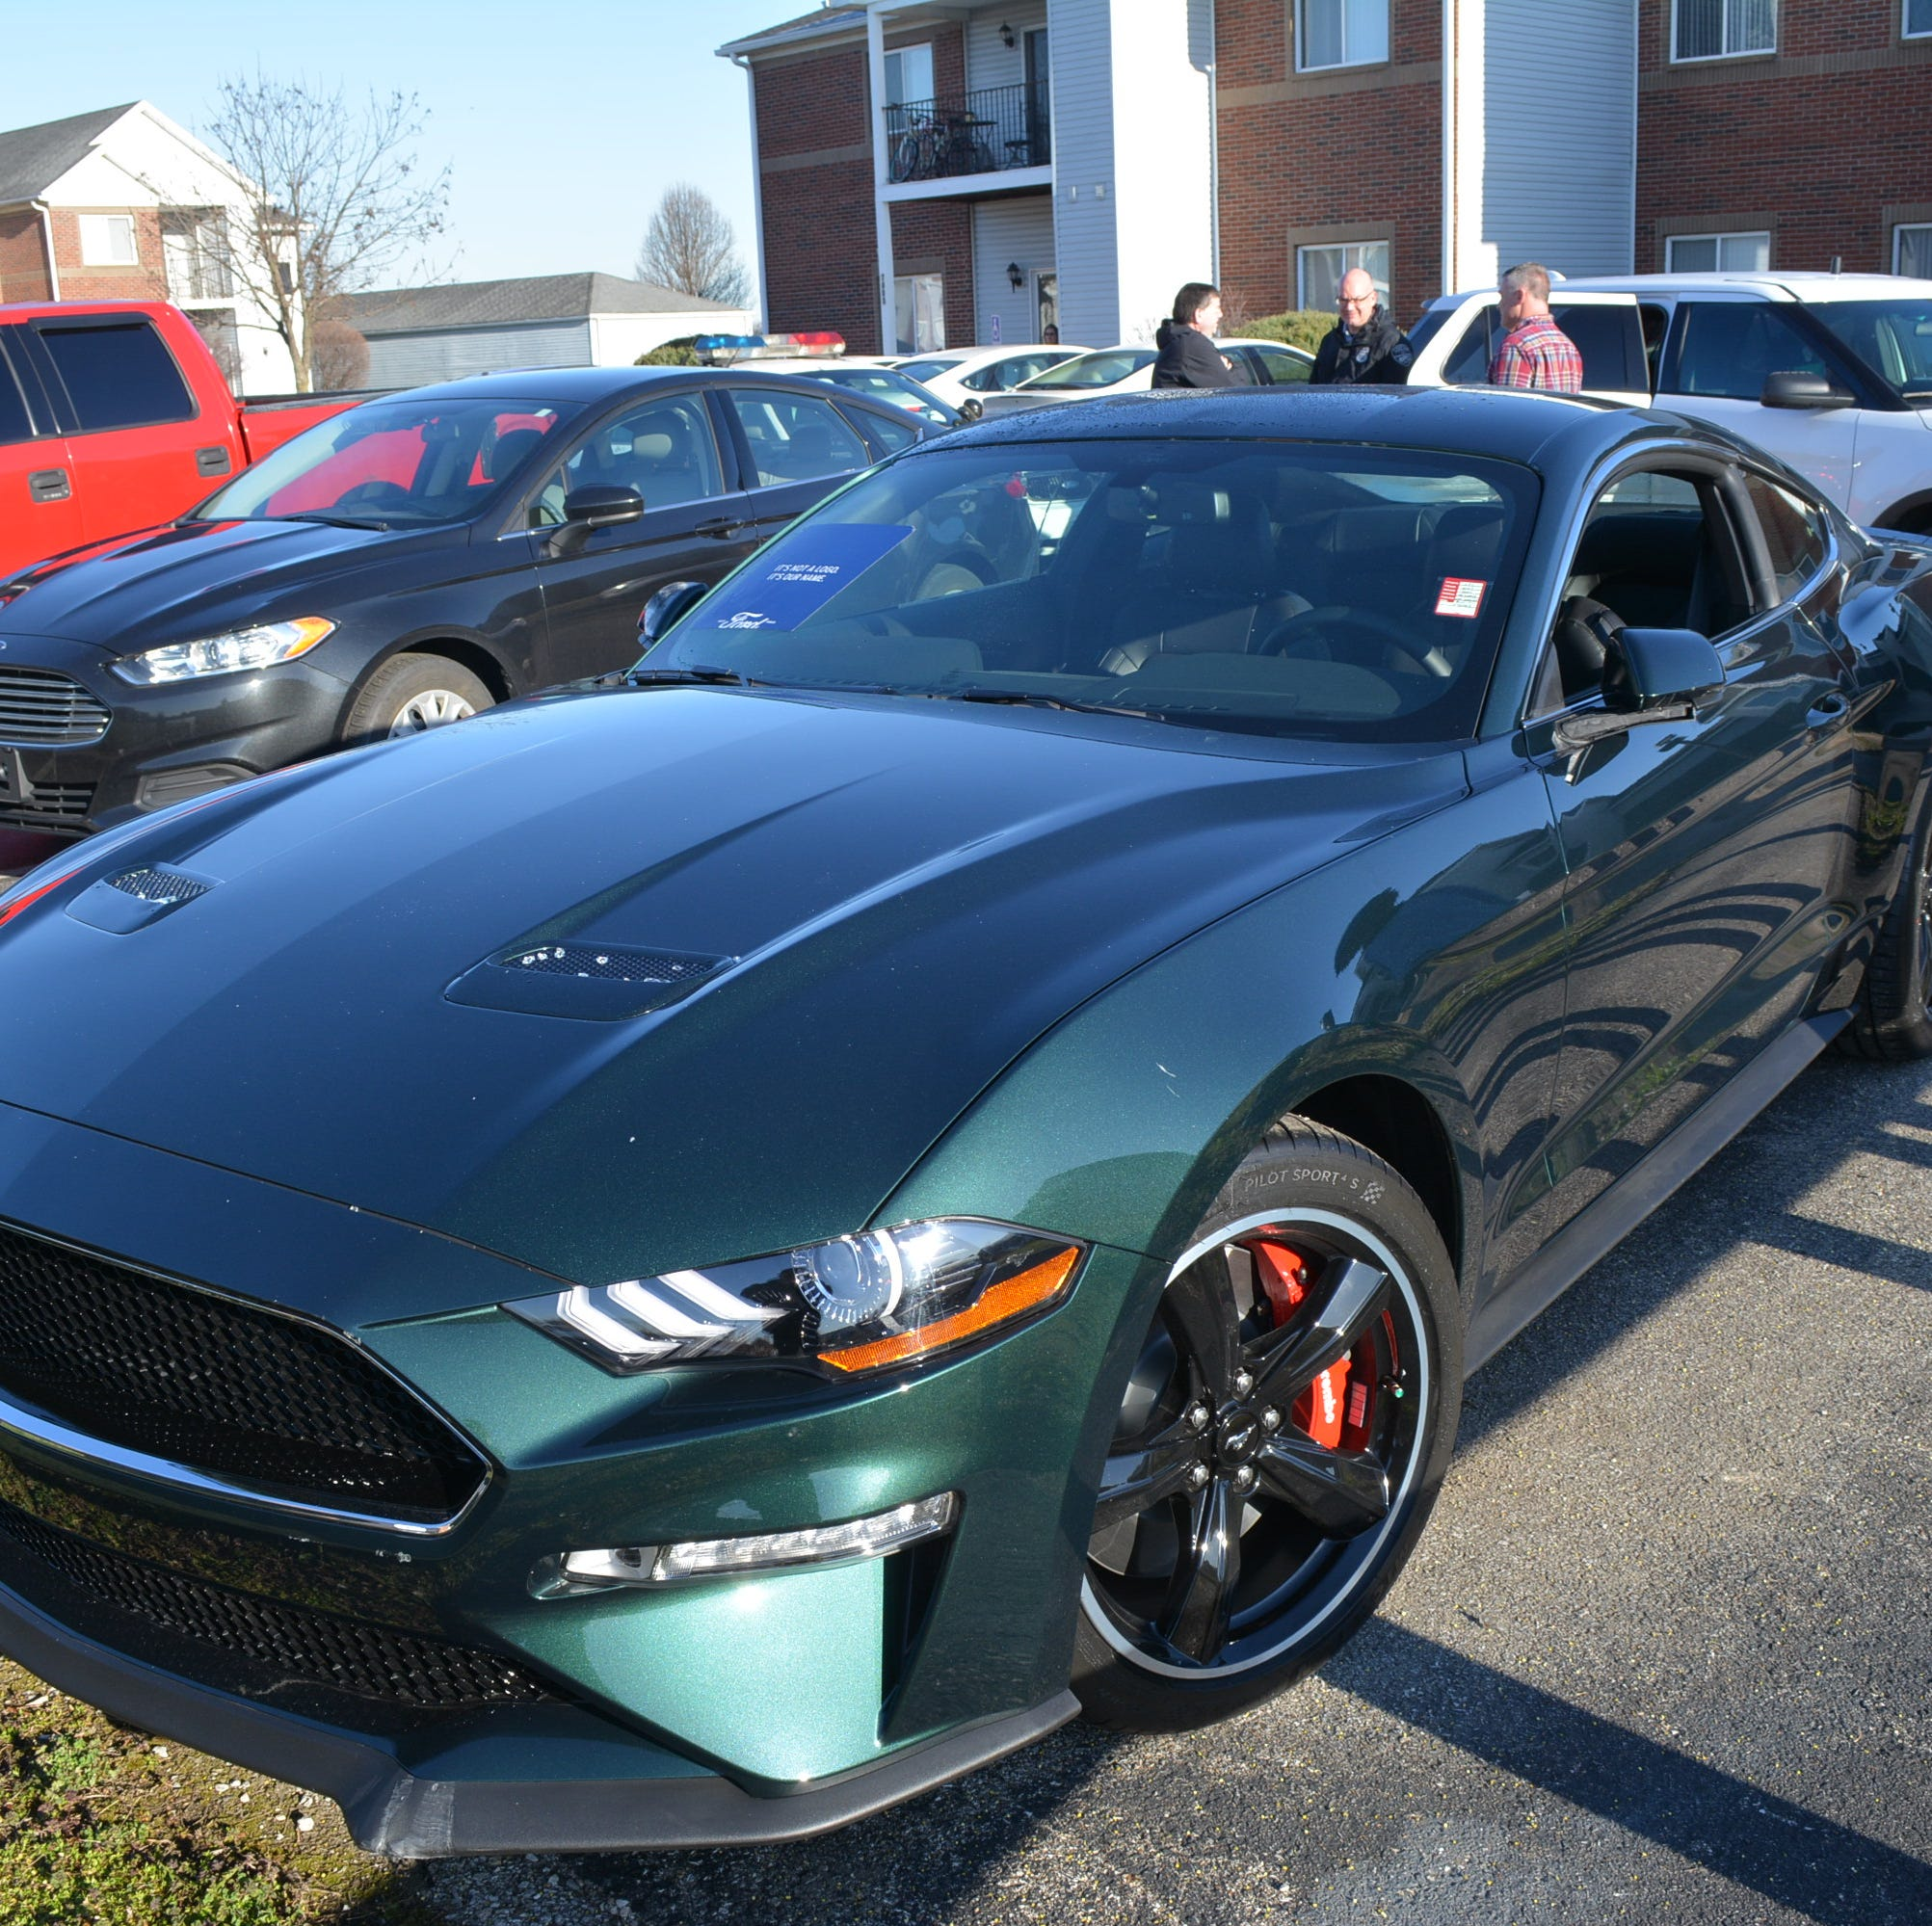 Thief plows Mustang Bullitt out of dealership showroom — maybe as a diversion